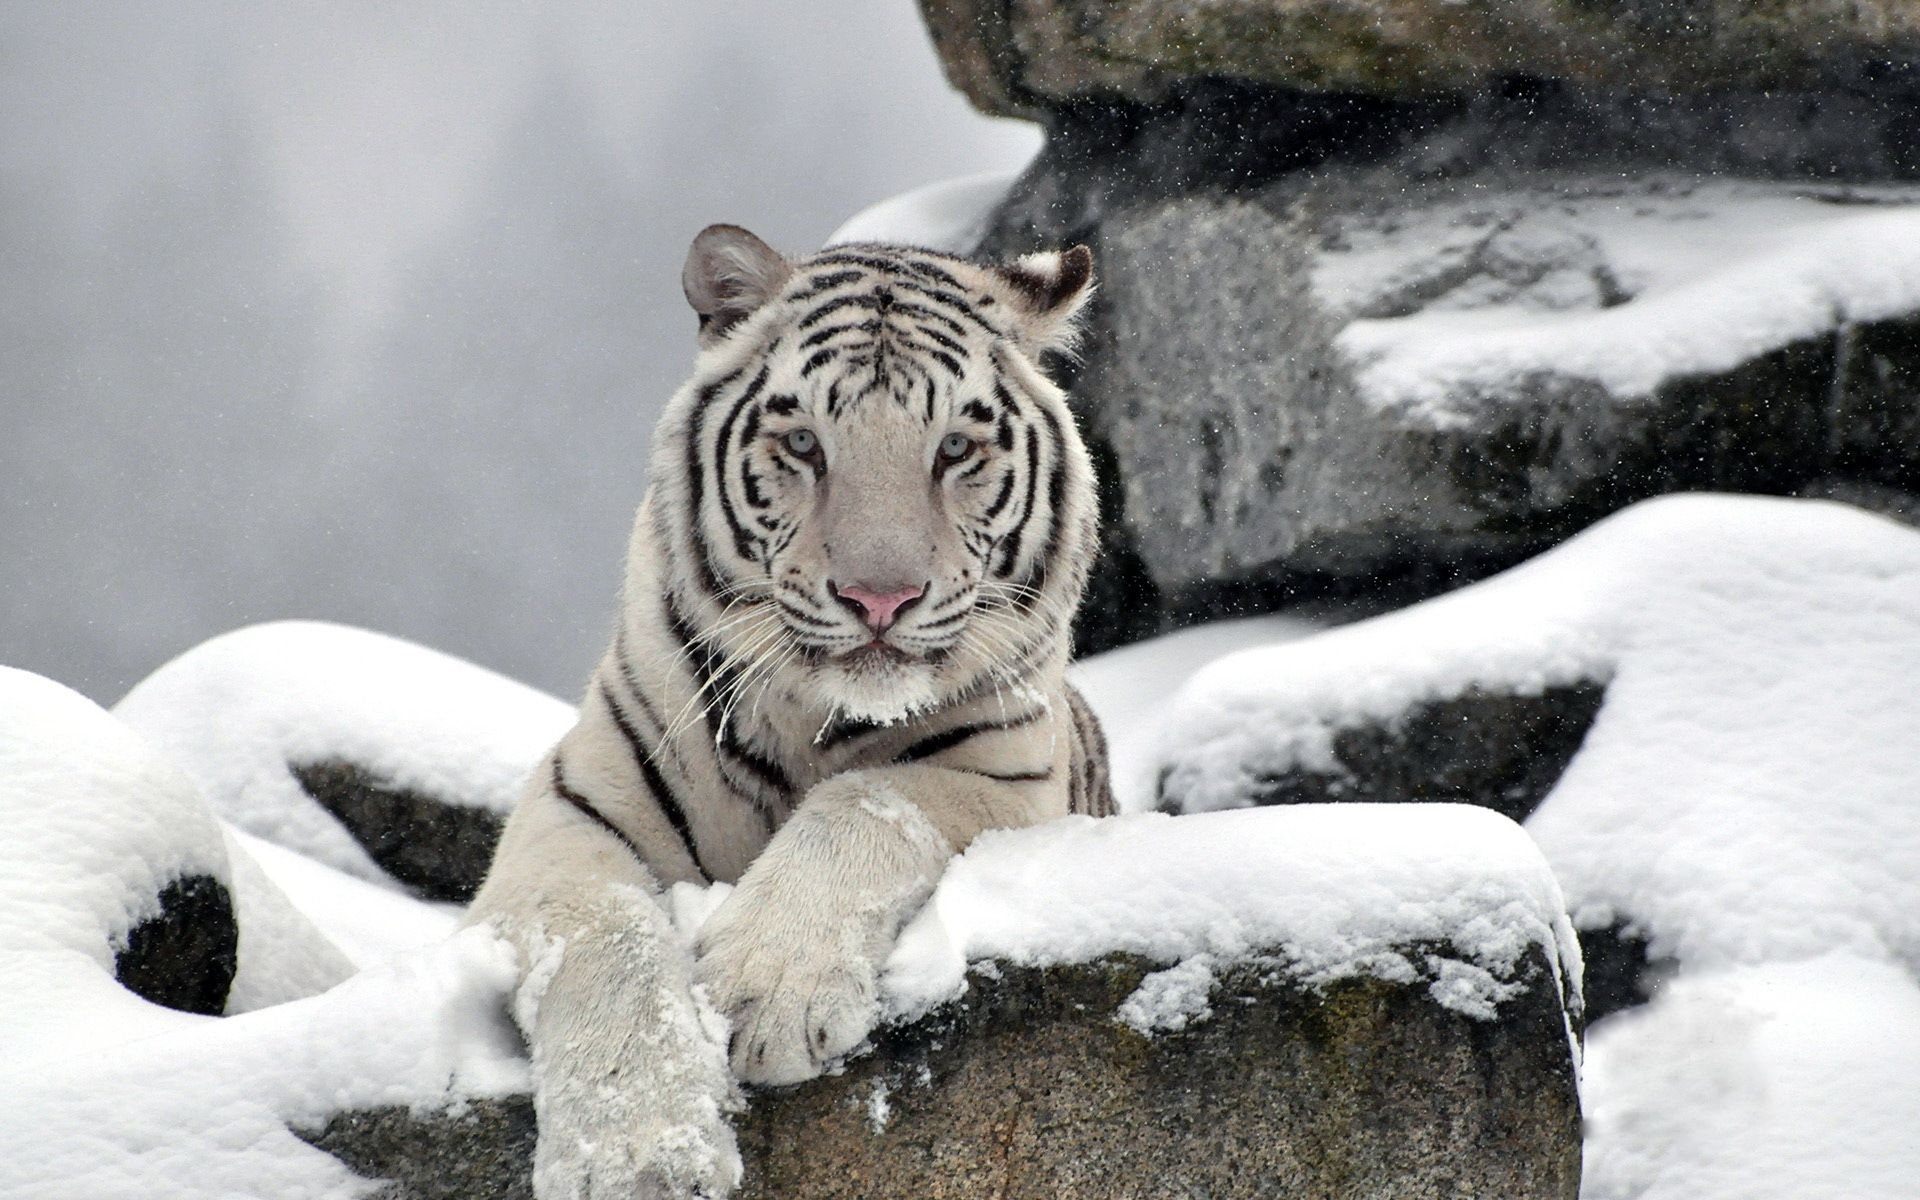 White Tiger In The Winter Background Wallpaper 10106 Snow Tiger Tiger Images Animals